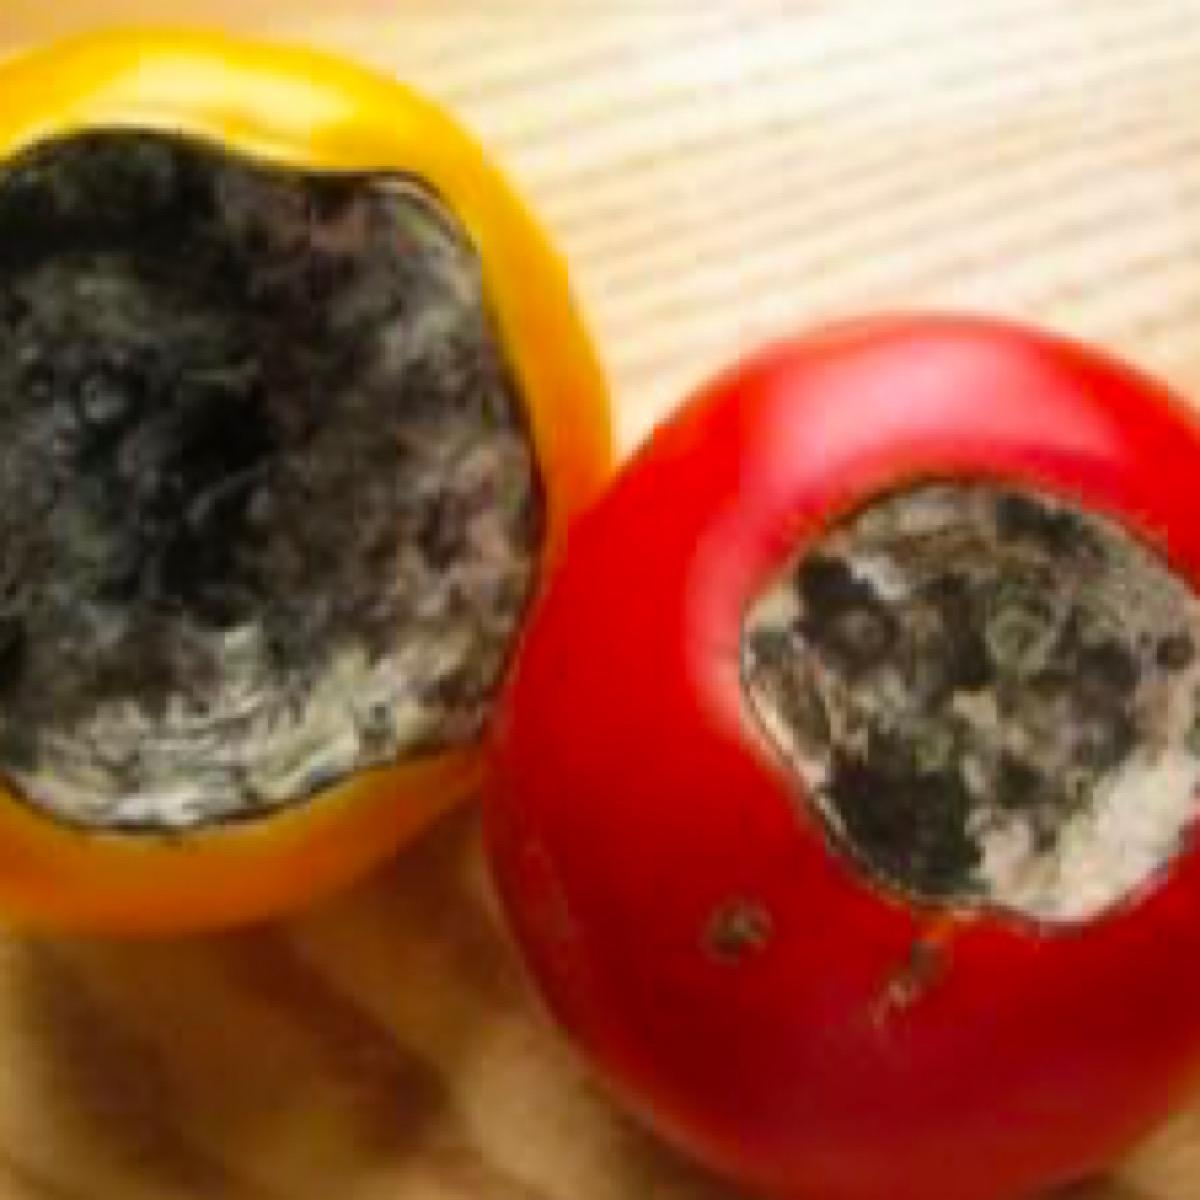 Tomatoes showing blossom end rot disease